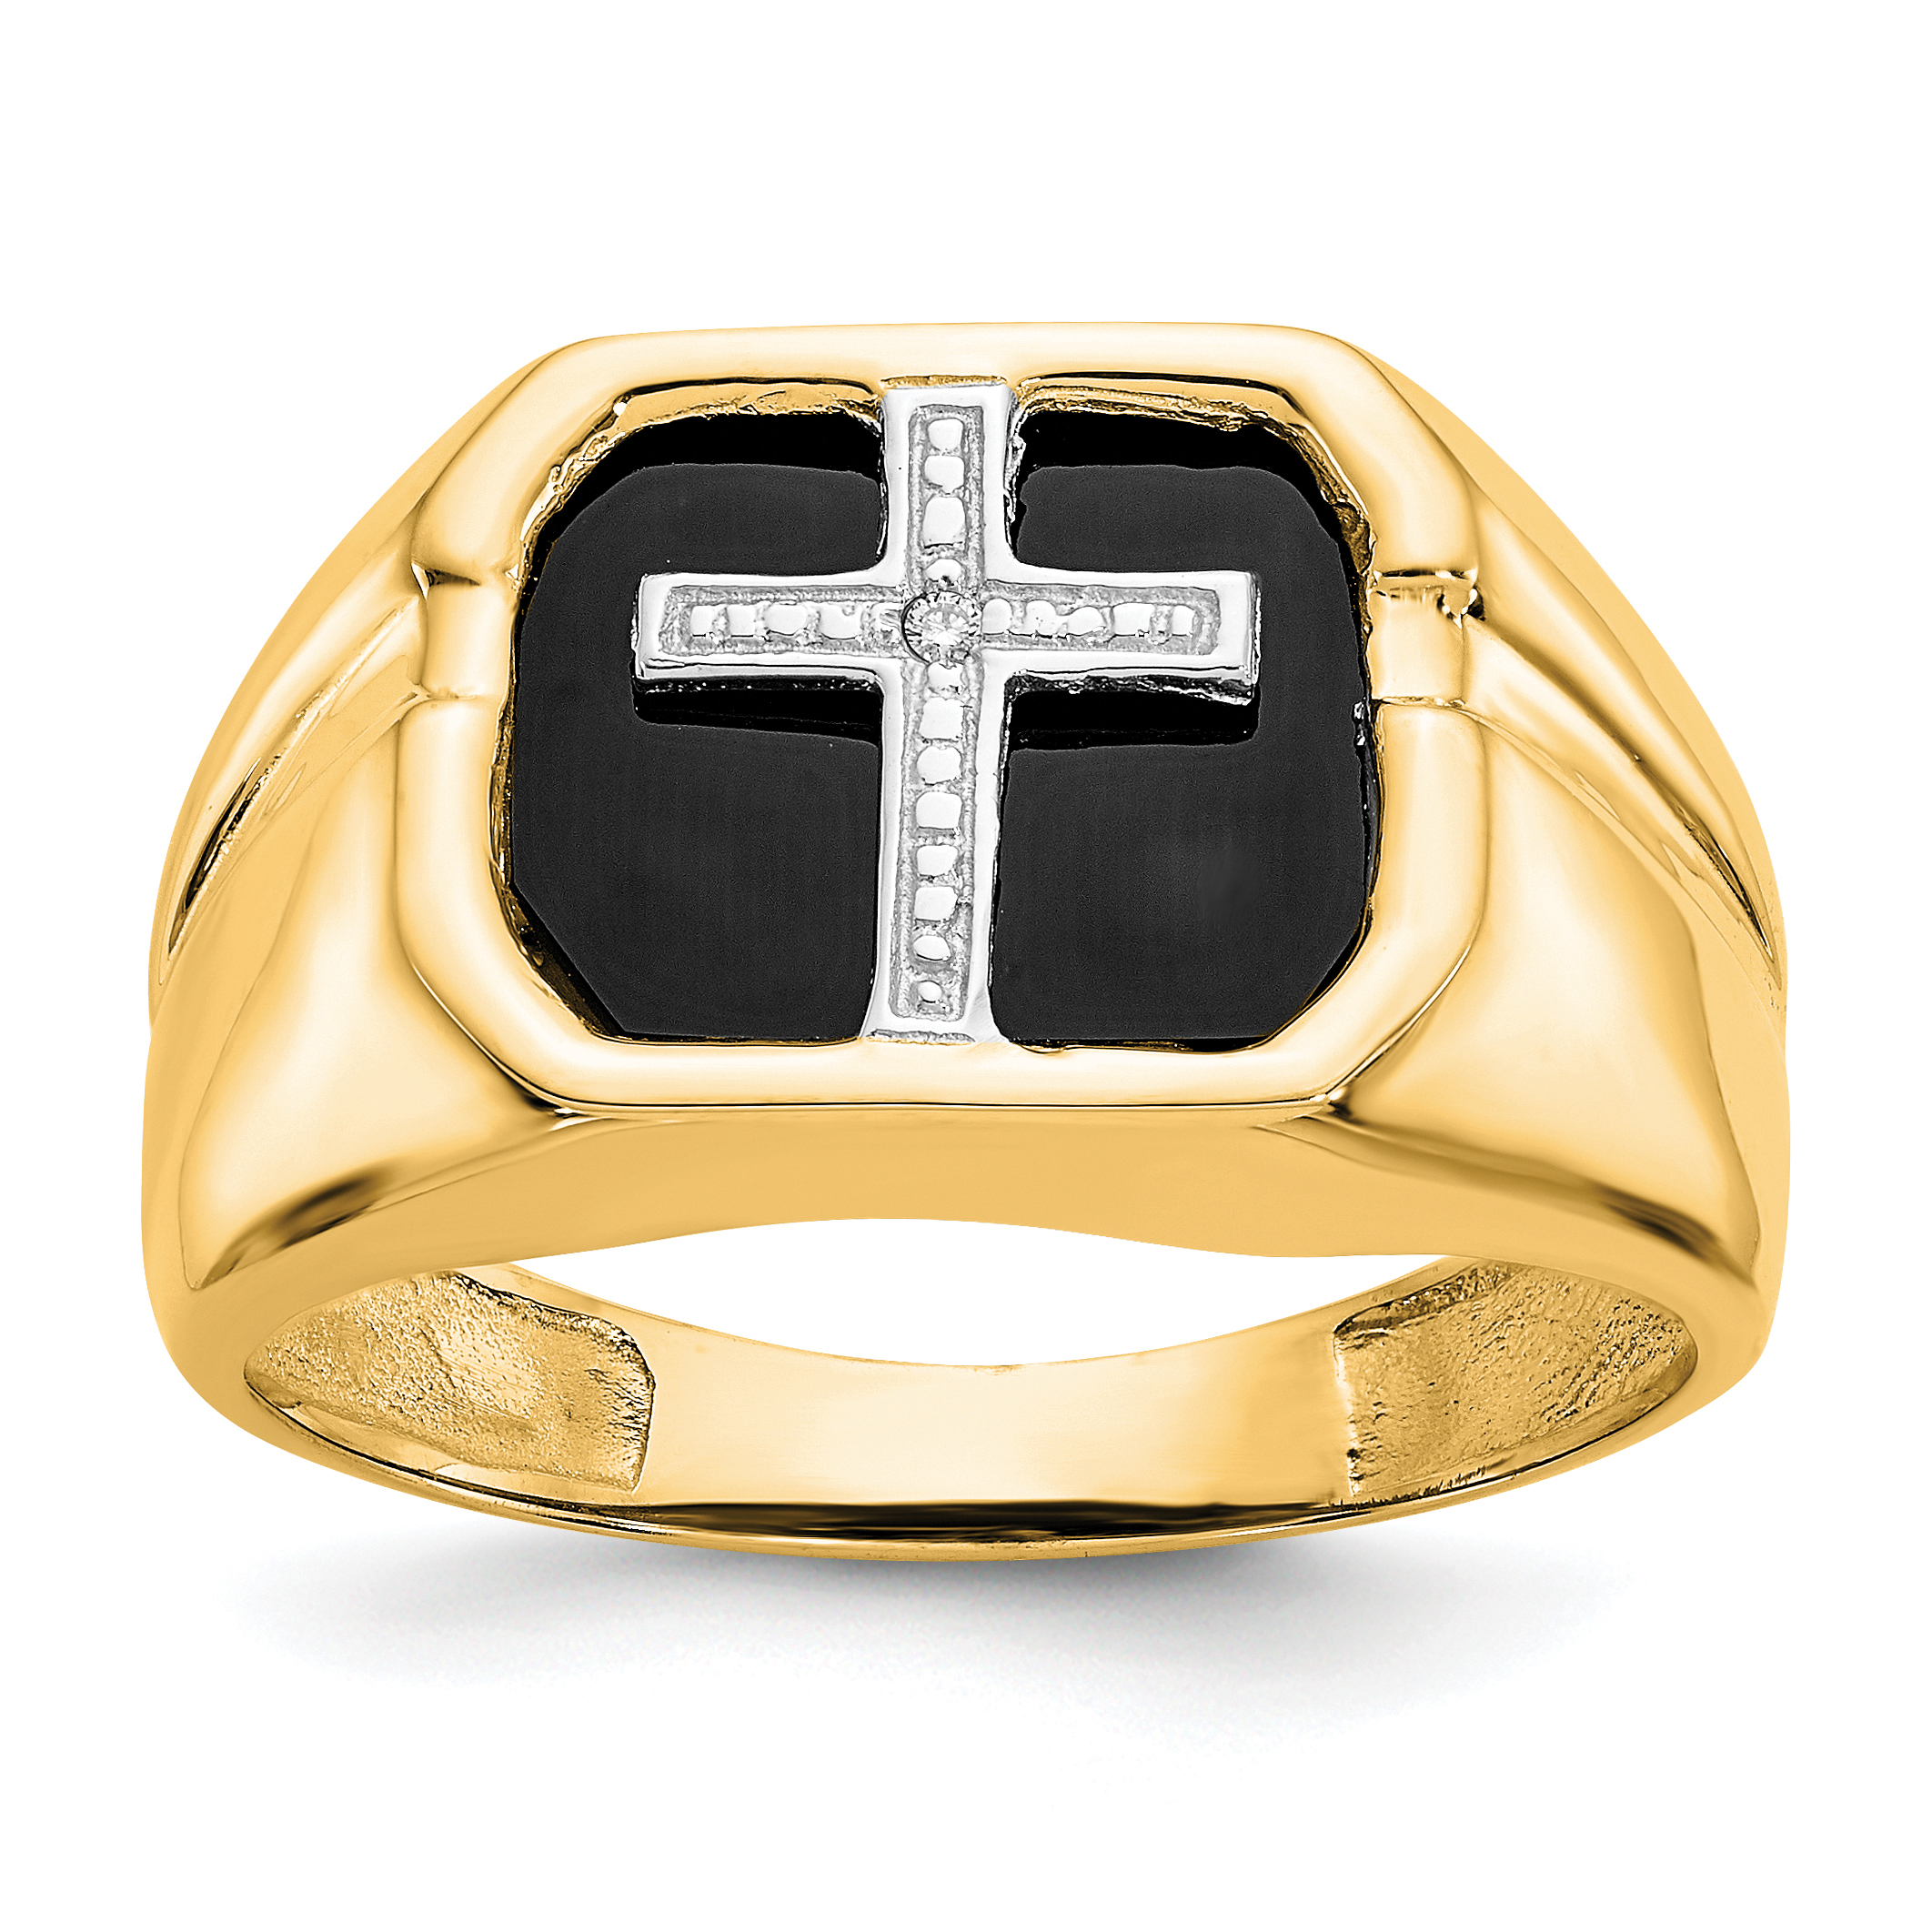 wearing religious rules blog the to mens are ring rings ways men s wear what there